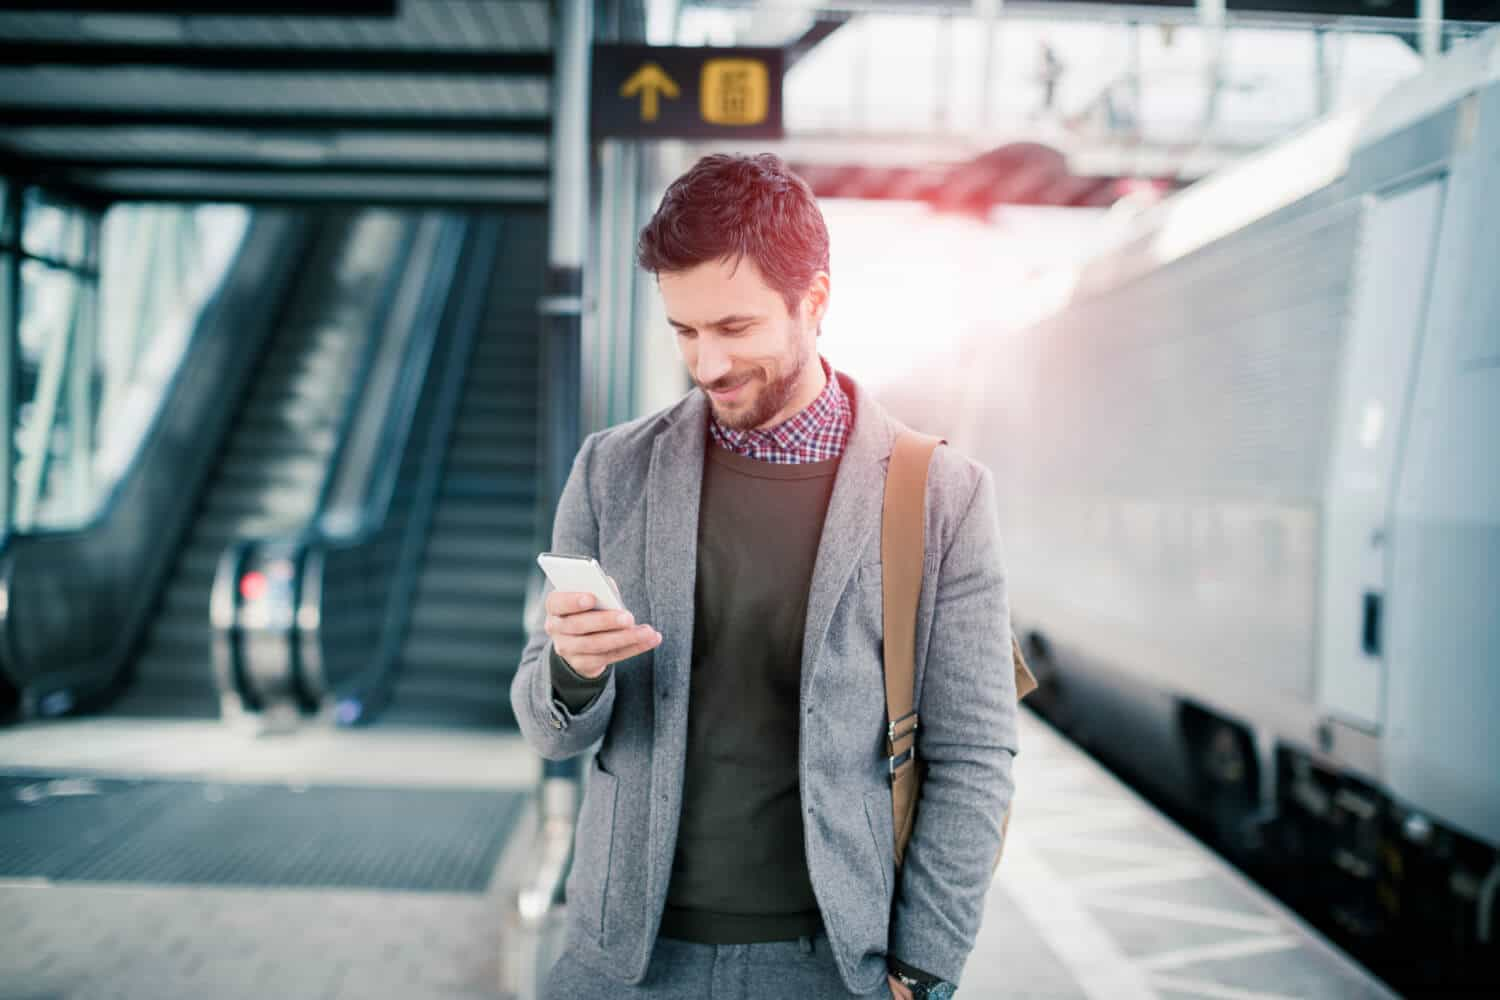 Millennial using his cell phone at the train station believes that retirement sucks